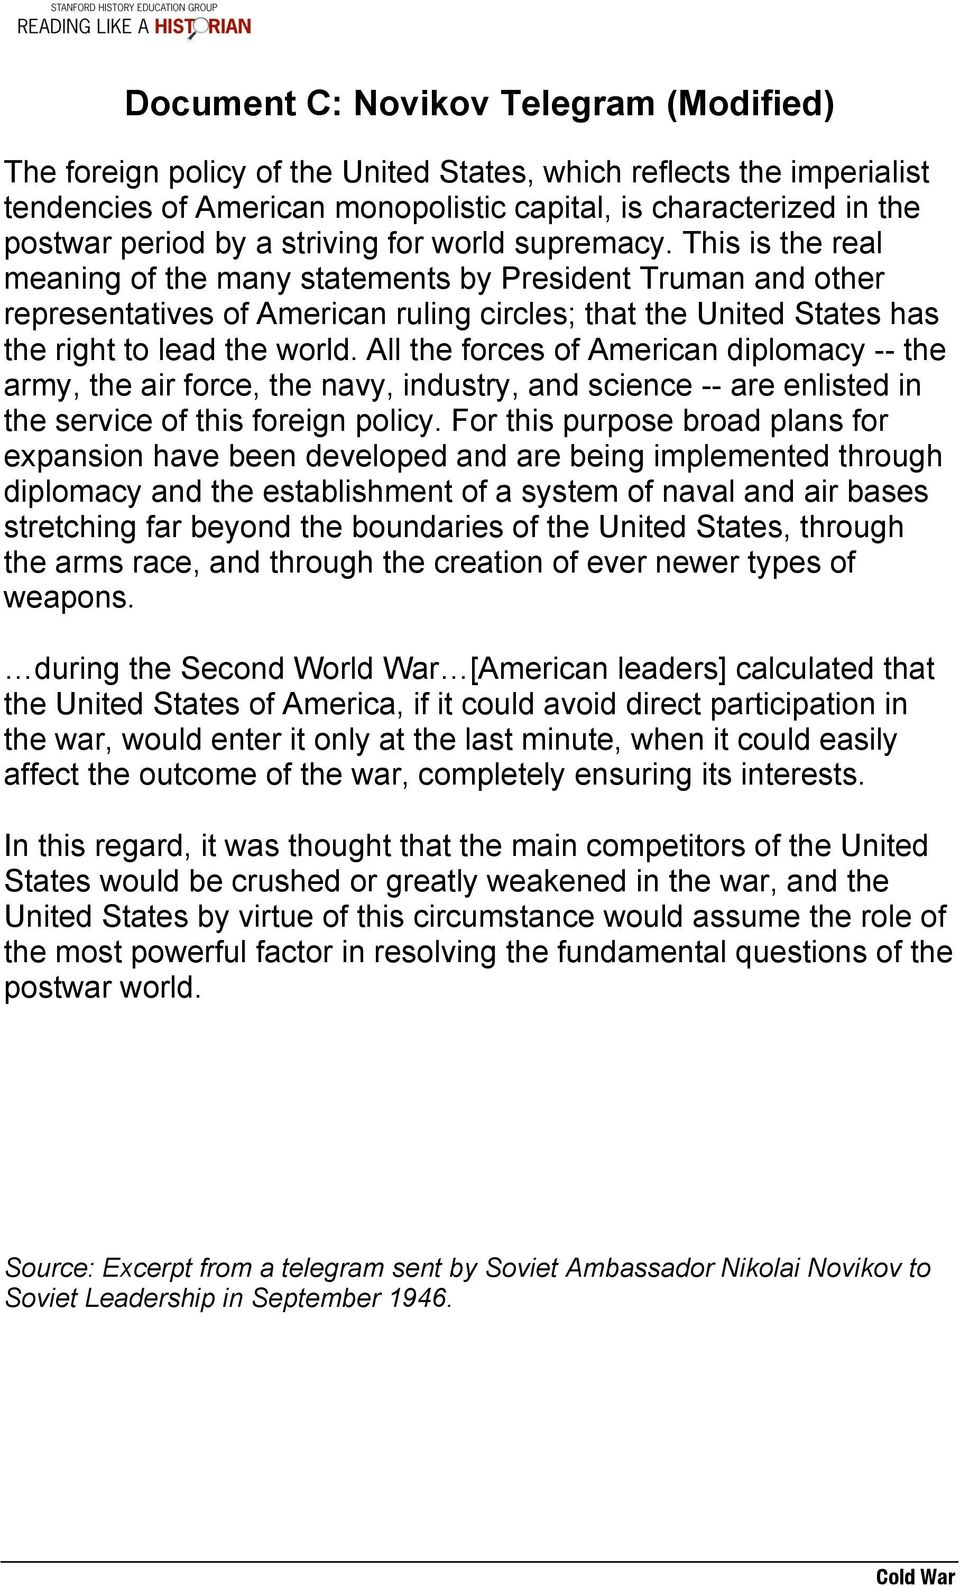 This is the real meaning of the many statements by President Truman and other representatives of American ruling circles; that the United States has the right to lead the world.